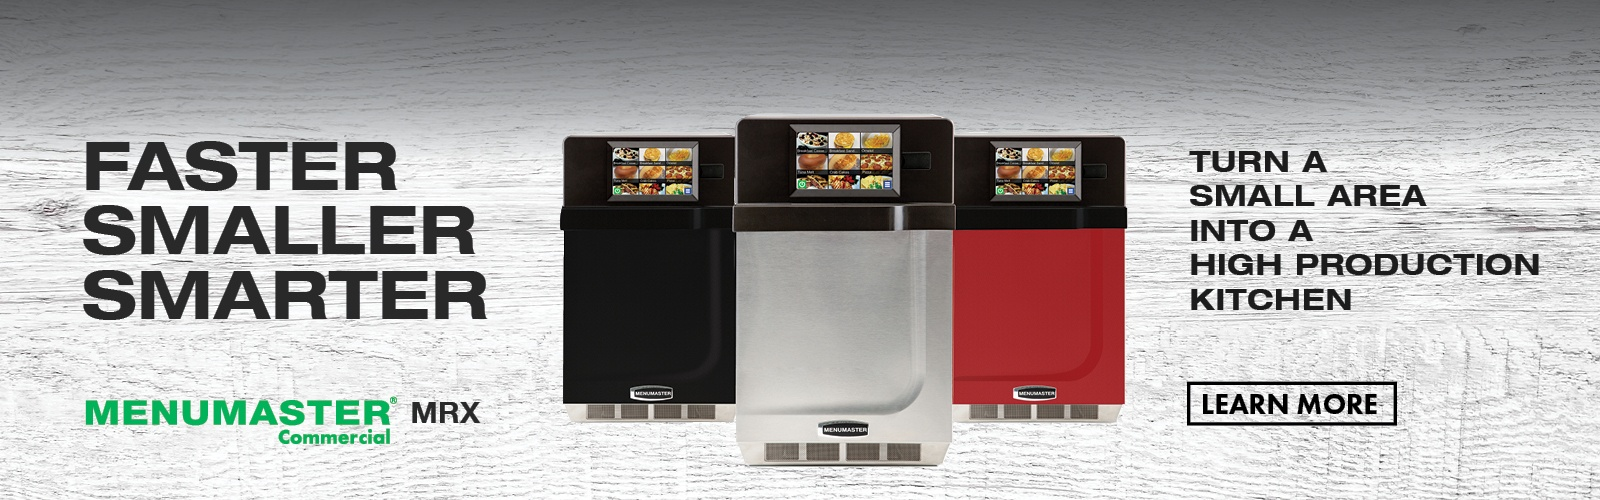 Introducing the Menumaster MRX Xpress IQ™: the smallest, fastest and smartest speed oven on offer